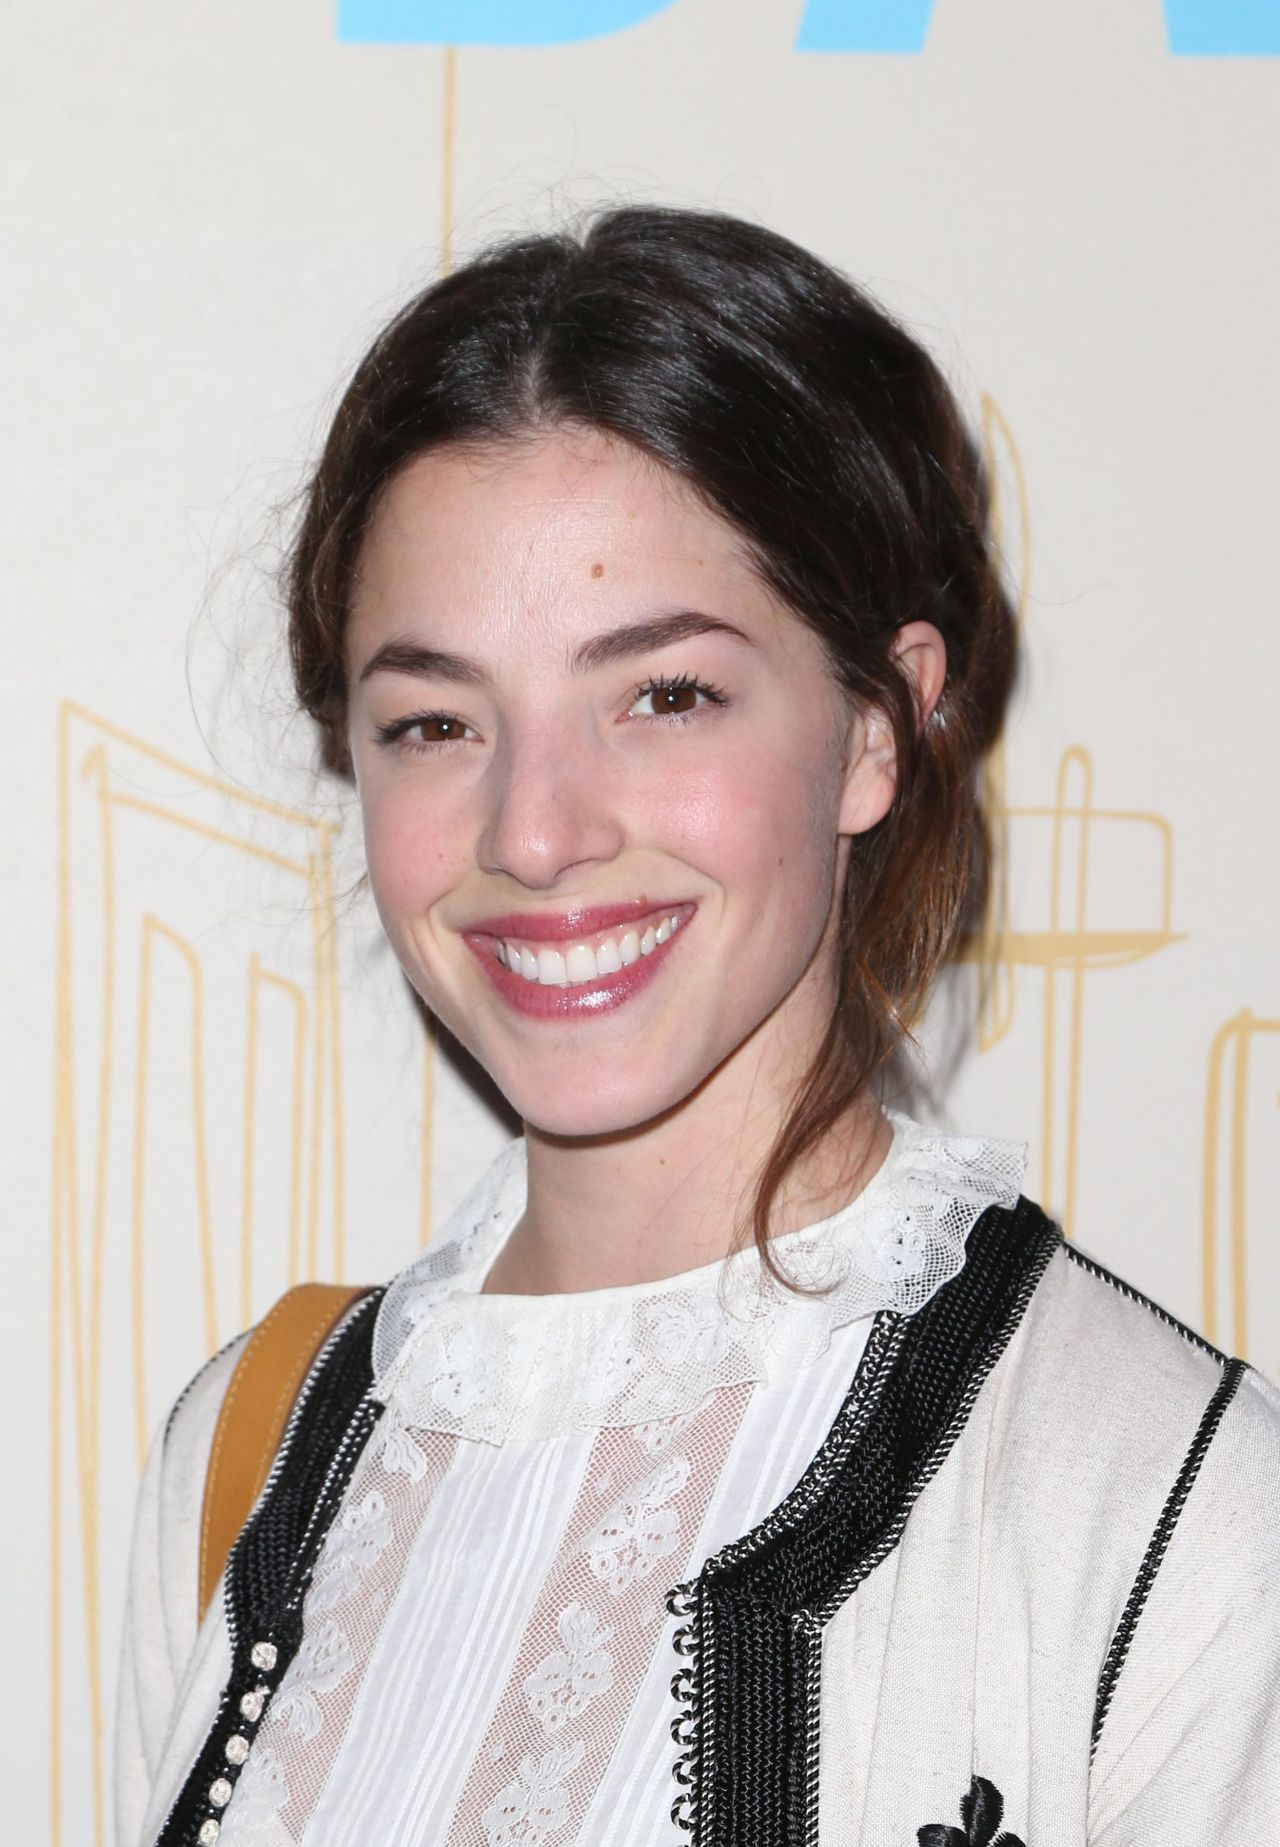 Discussion on this topic: Julie McGregor, olivia-thirlby/